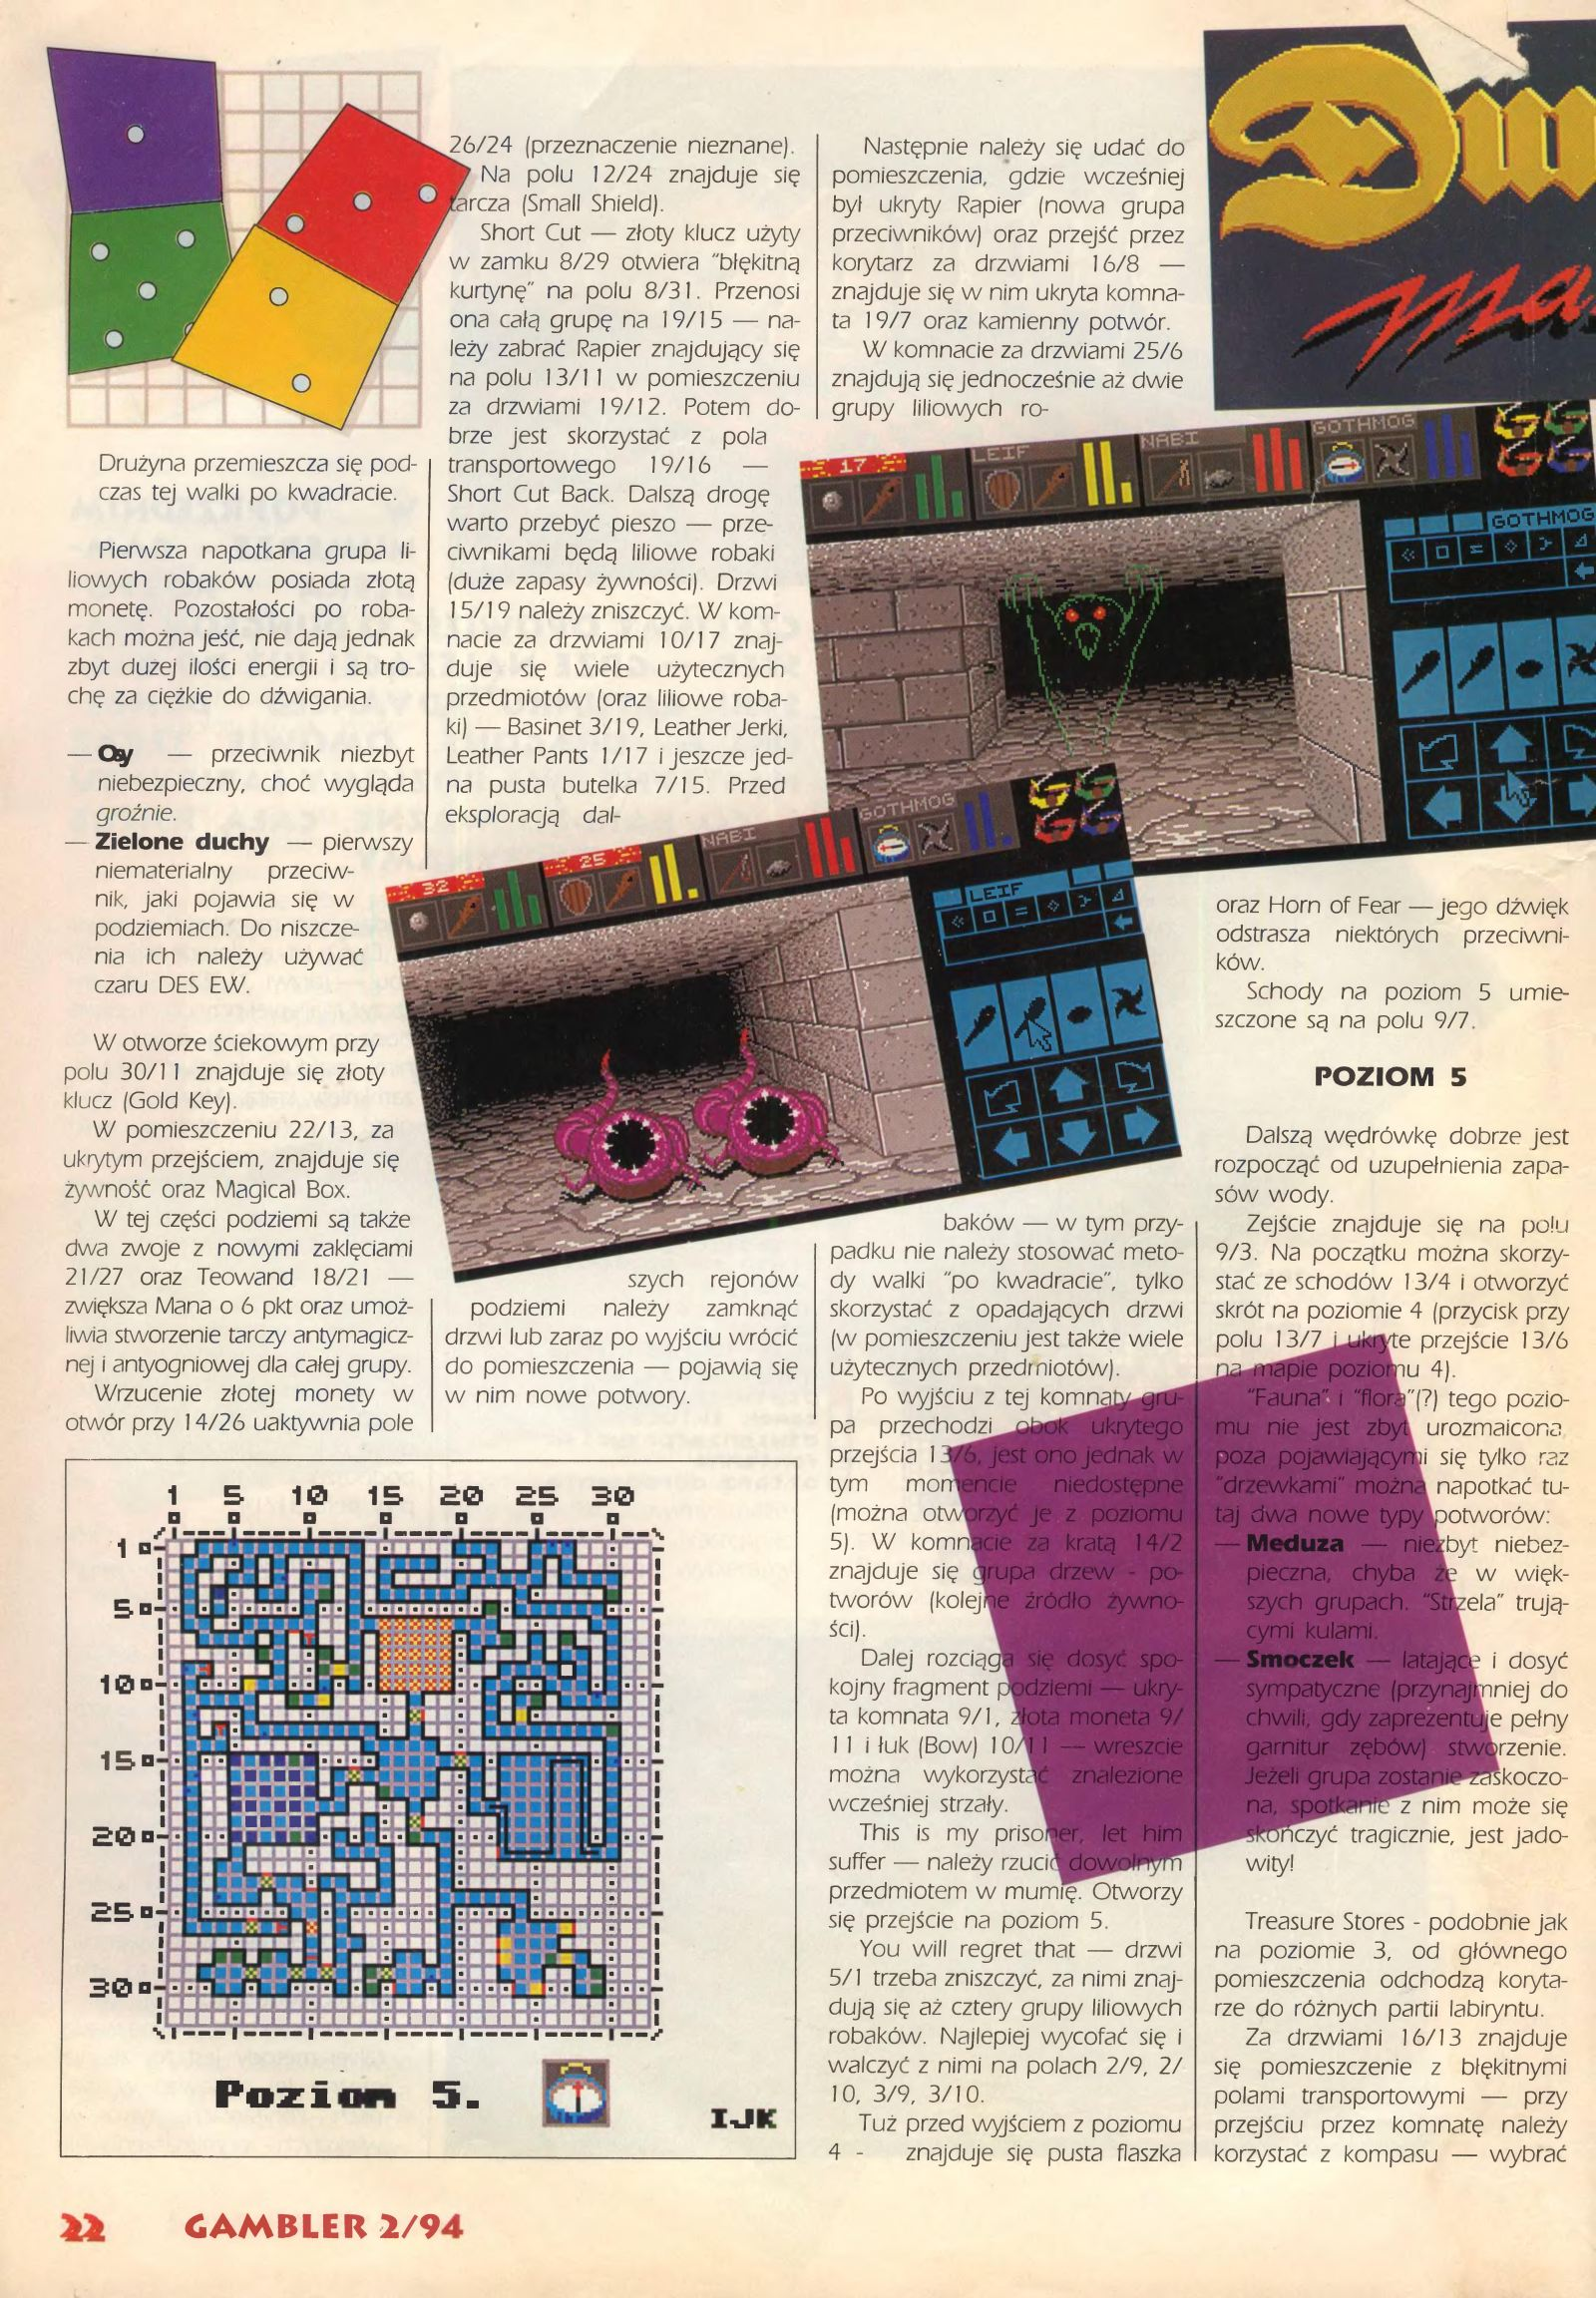 Dungeon Master Guide published in Polish magazine 'Gambler', February 1994, Page 22